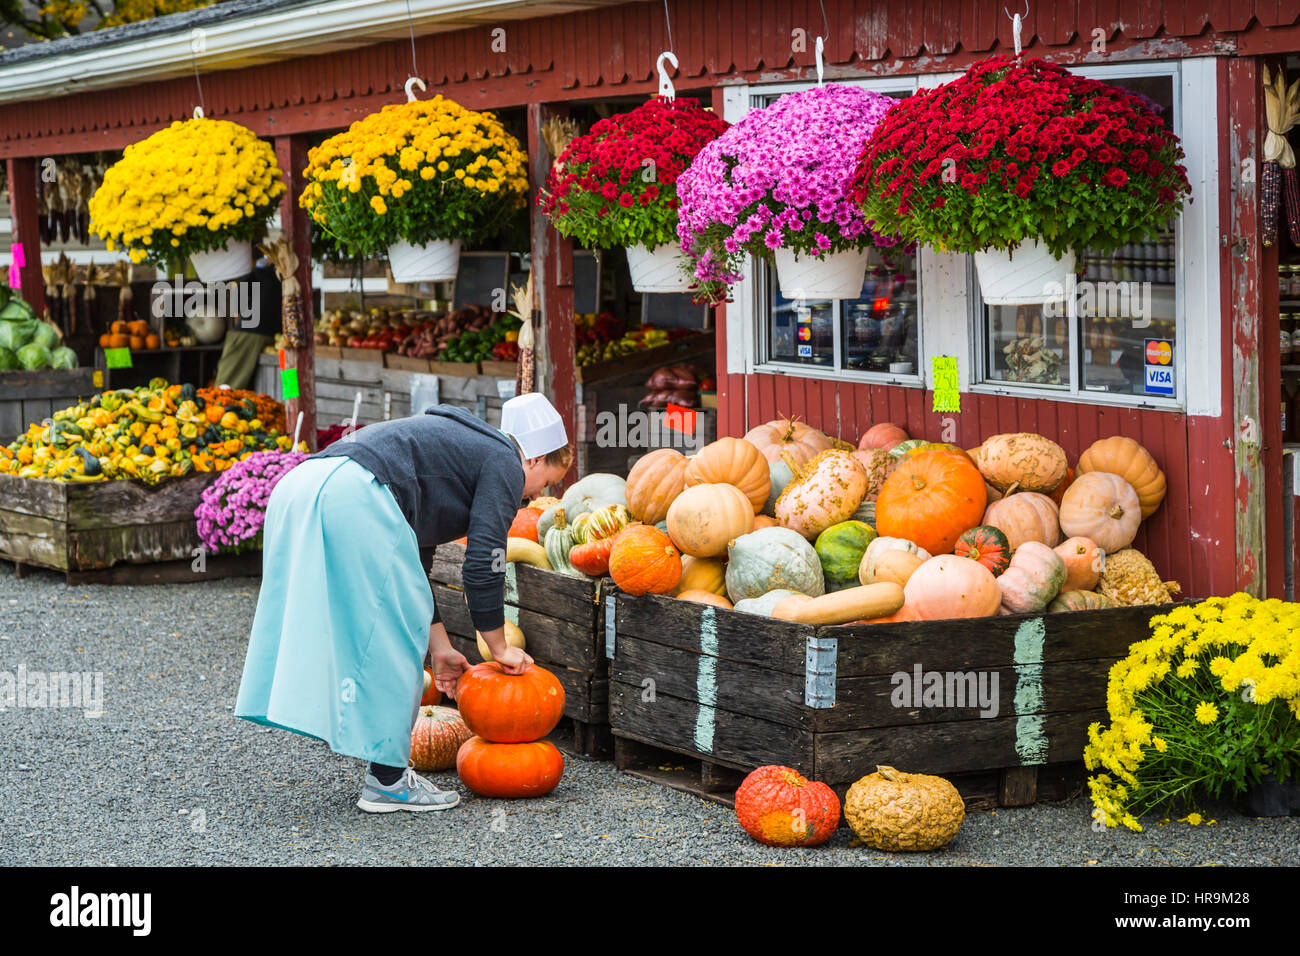 A farm produce market selling pumpkins and gourds near Walnut Creek, Ohio, USA. - Stock Image